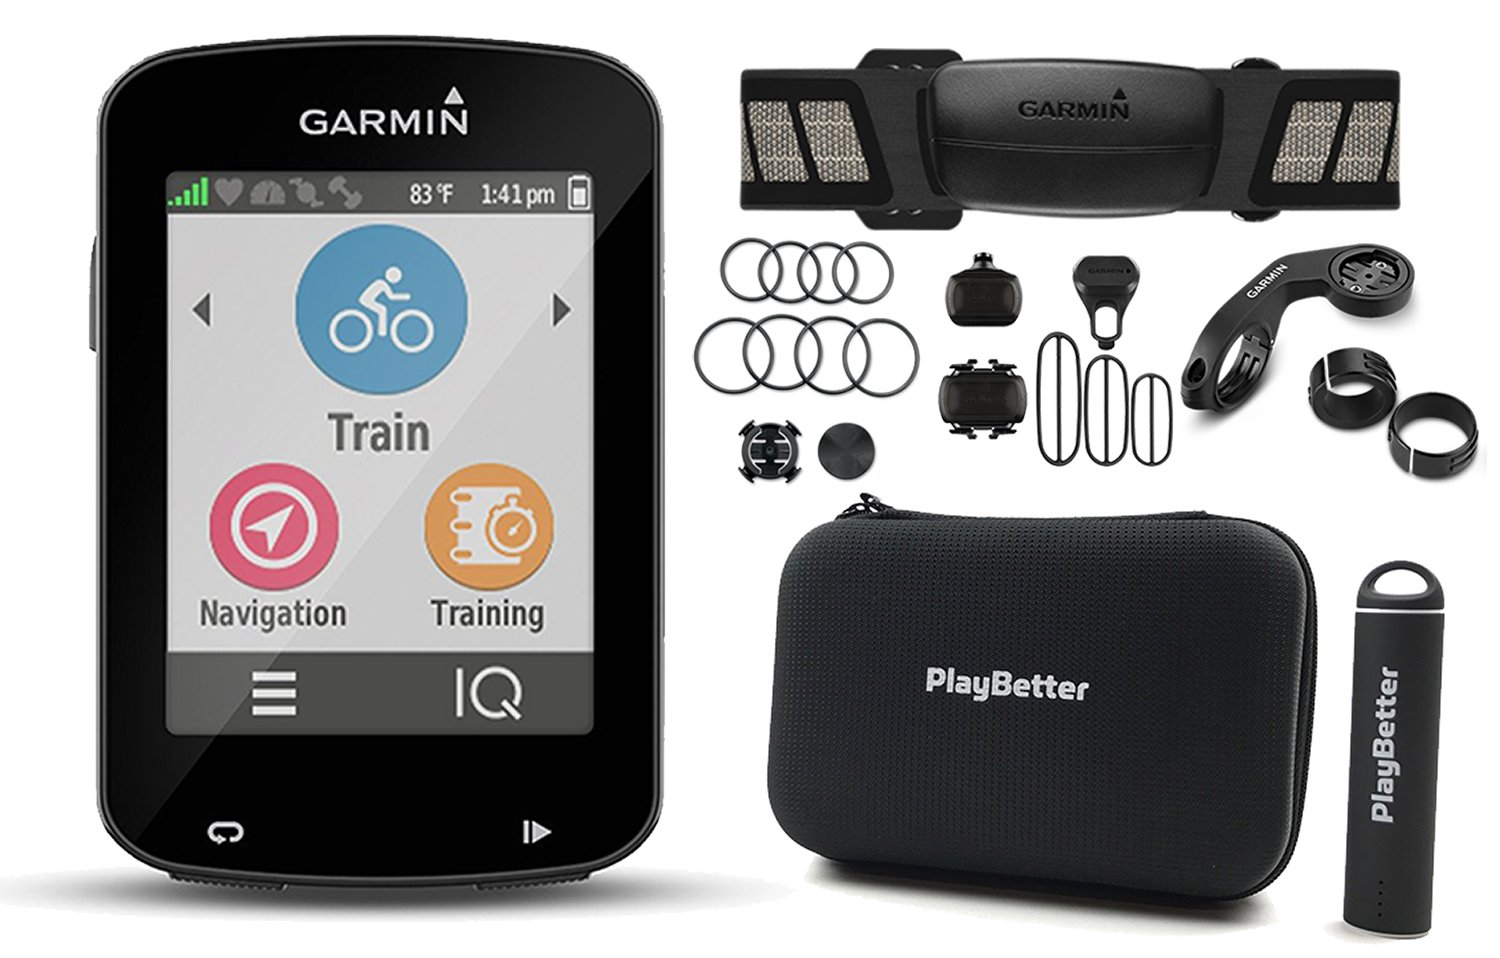 Cheap Cadence Cycle Computer Find Deals On Spidometer Cateye Strada Get Quotations Garmin Edge 820 Bundle With Chest Hrm Speed Sensors Playbetter Silicone